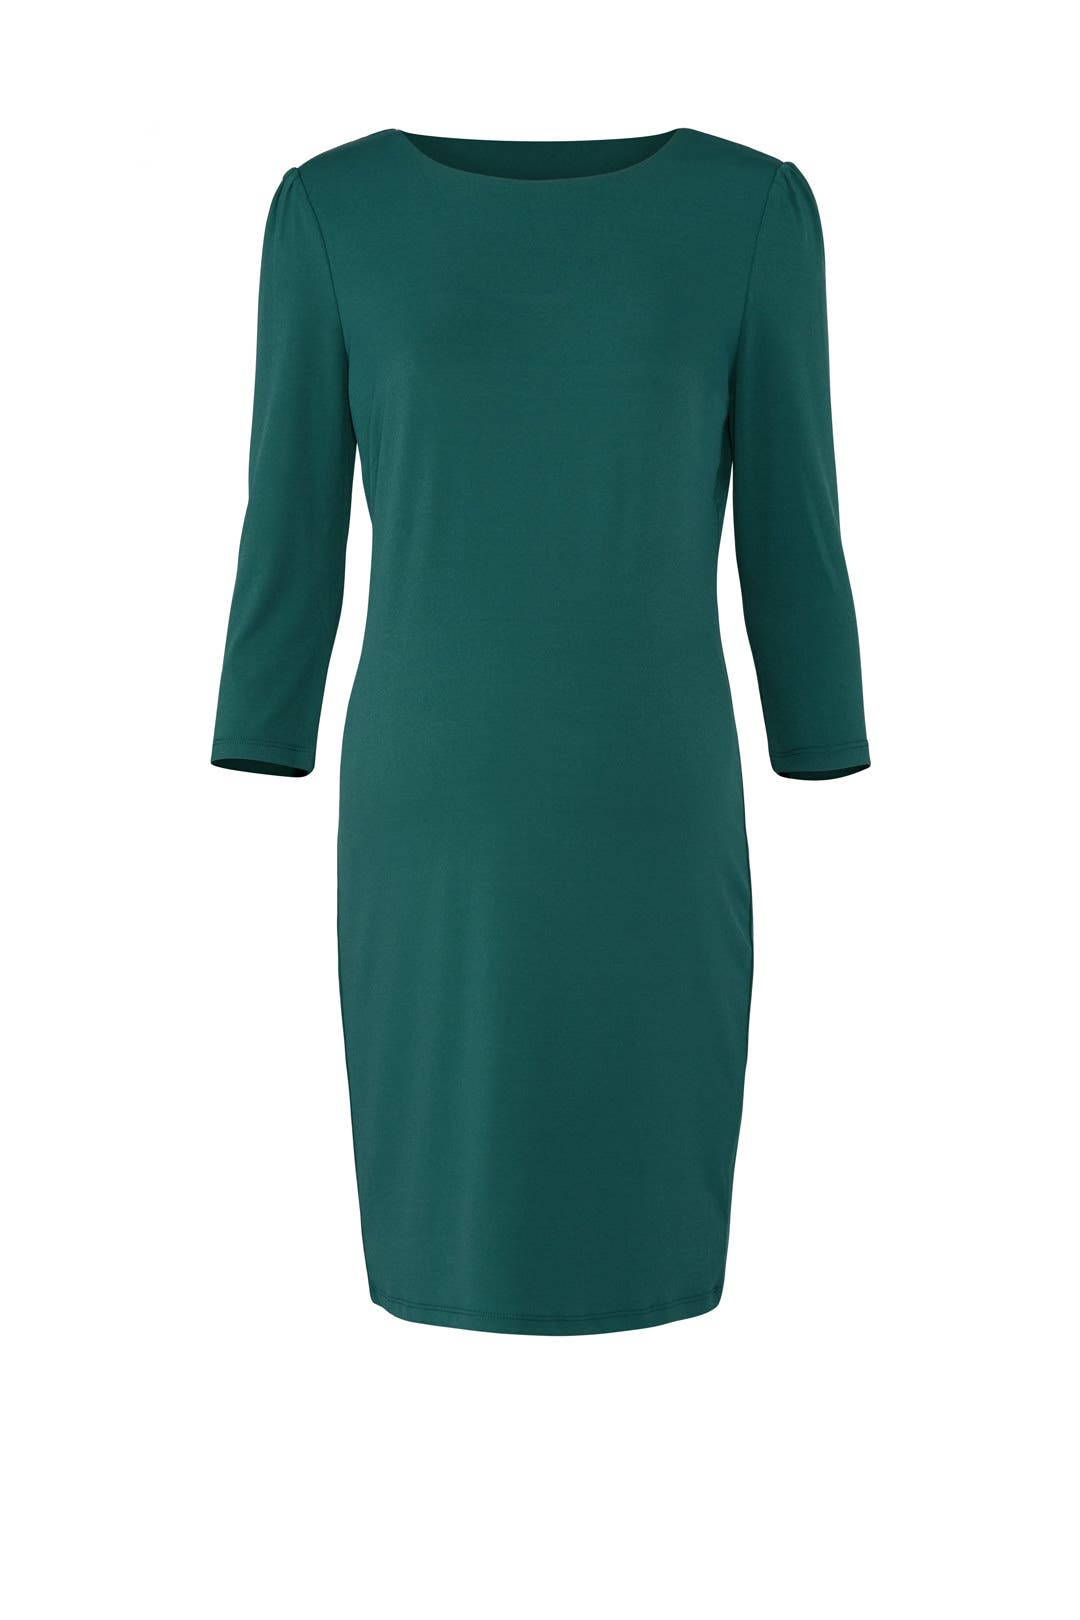 Emerald Audra Maternity Dress by Rosie Pope for $30 | Rent the Runway